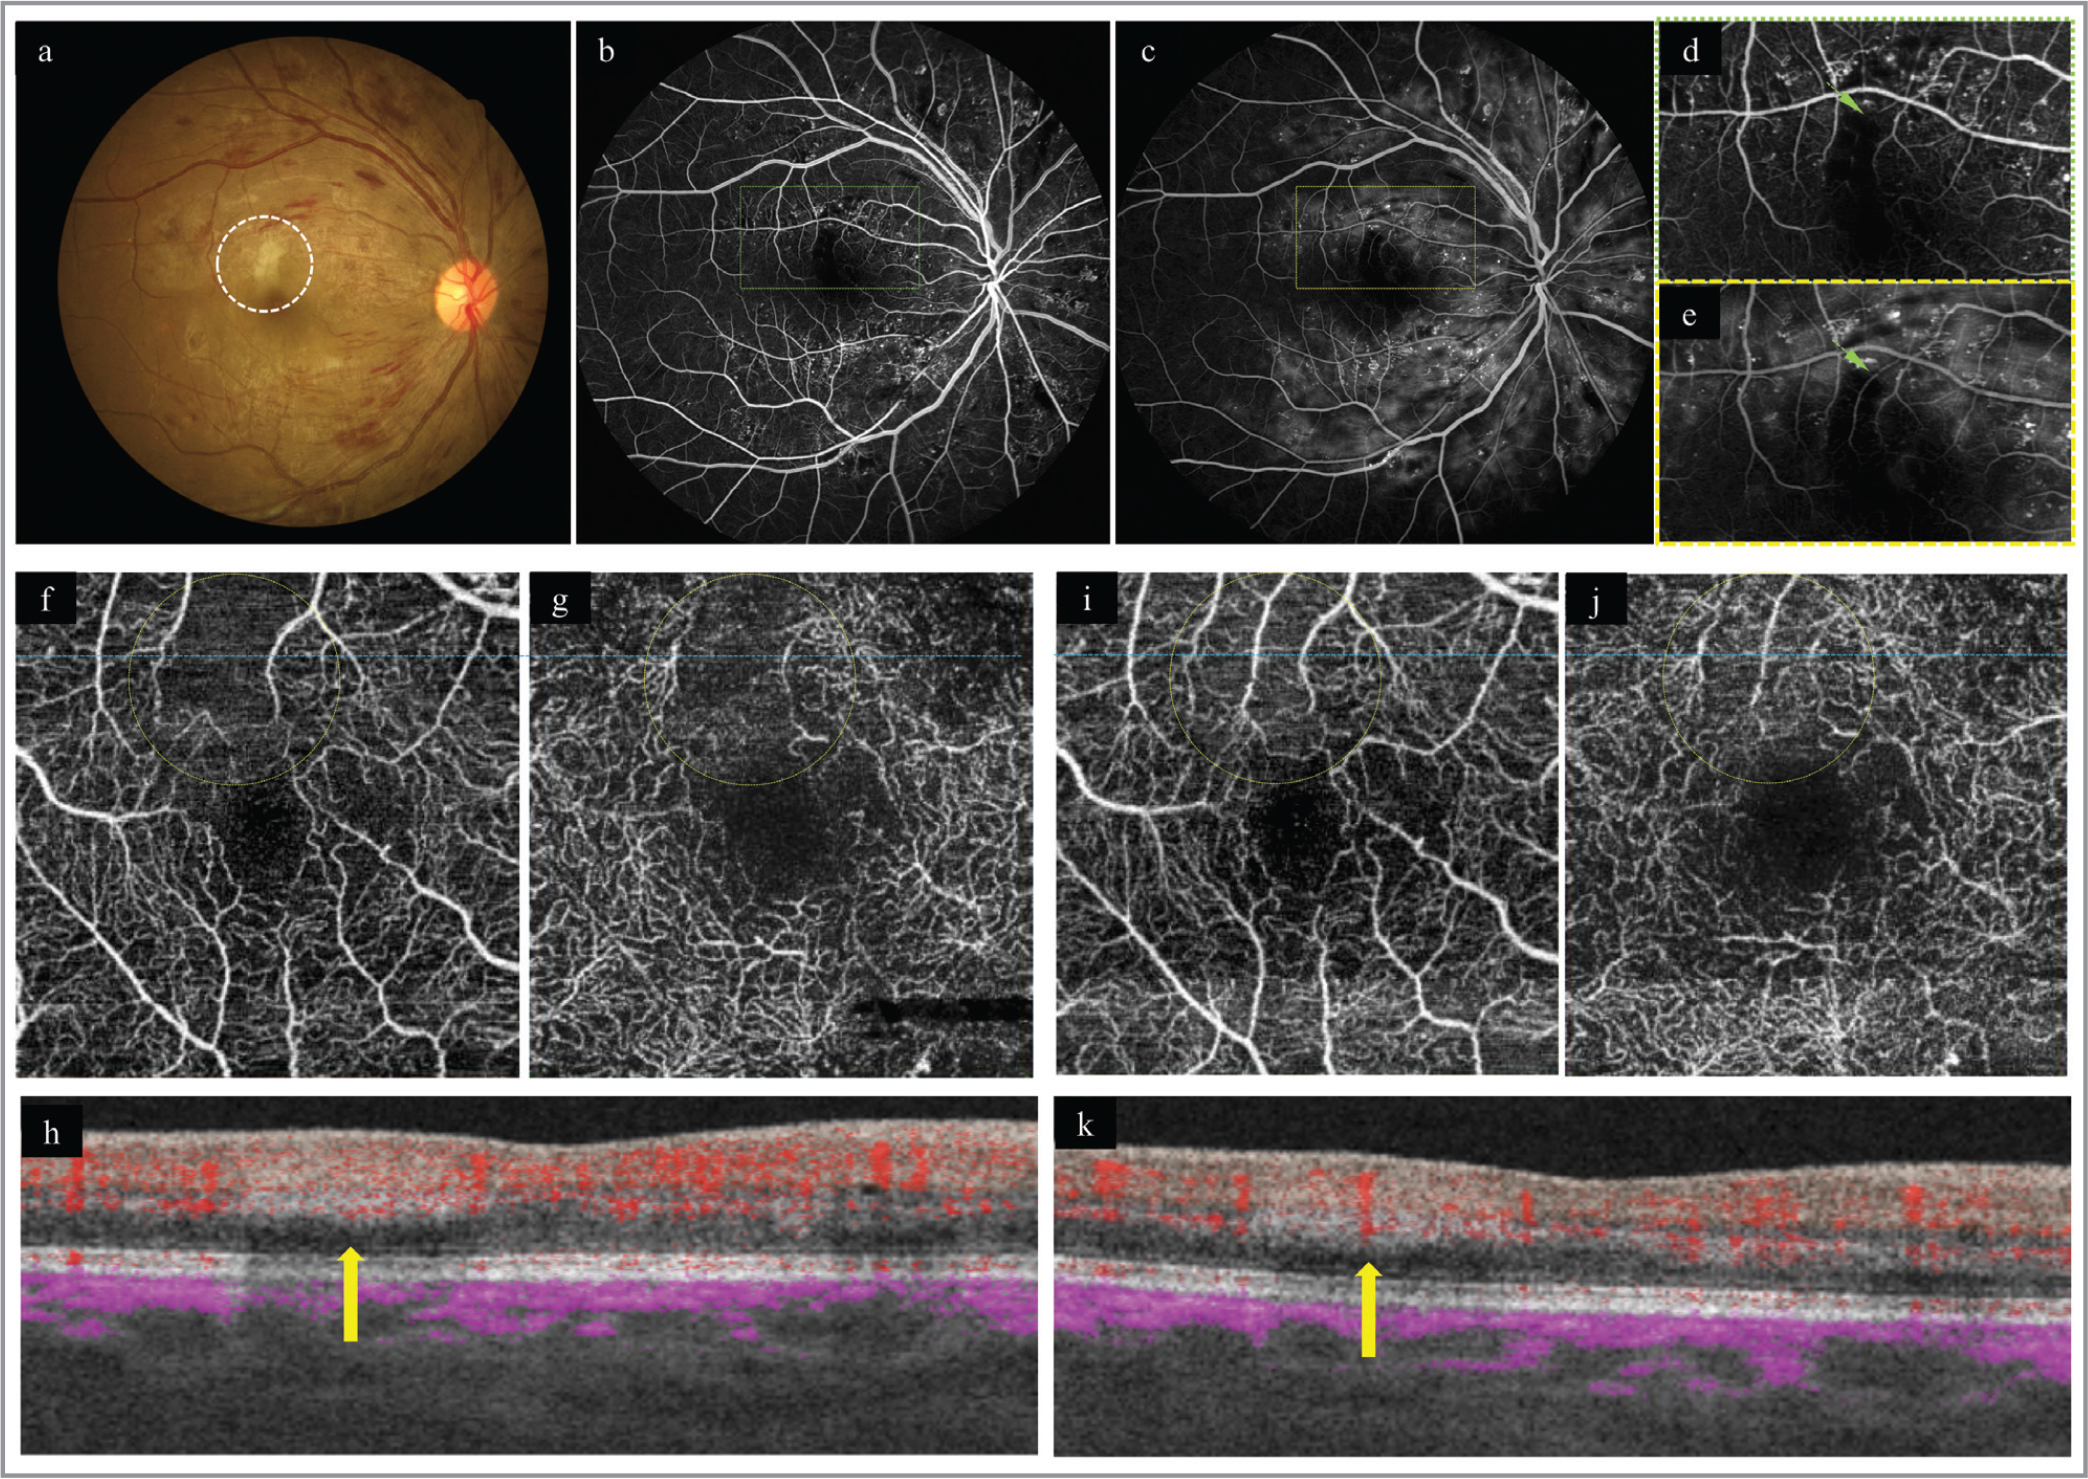 Fundus images 8 weeks after delivery. (a) A fundus photograph shows a gray band-like retinal opacity (circle). (b–e) Fluorescein angiography images were obtained at 19 seconds (b, d) and 47 seconds (c, e) after injection. The rectangles in b and c are enlarged on d and e, respectively. The third branch of the arterioles (arrows) has delayed filling but is not occluded. (f–h) Optical coherence tomography angiography (OCTA) images in the superfical (f) and deep (g) plexuses show flow voids corresponding to the arterial branch (circles). A flow-overlaid B-scan (h) at the blue lines on en-face OCTA images (f, g) shows a hyperrefective band in the middle retina and decreased flow signal in the arterial branch (yellow arrows). (i–k) Repeated OCTA images 2 hours after the first scan show reperfusion of the arterial branch and nearby capillaries in both plexuses (i, j, yellow circles). A flow-overlaid B-scan (k) also shows increased flow signal in the arterial branch (yellow arrow).